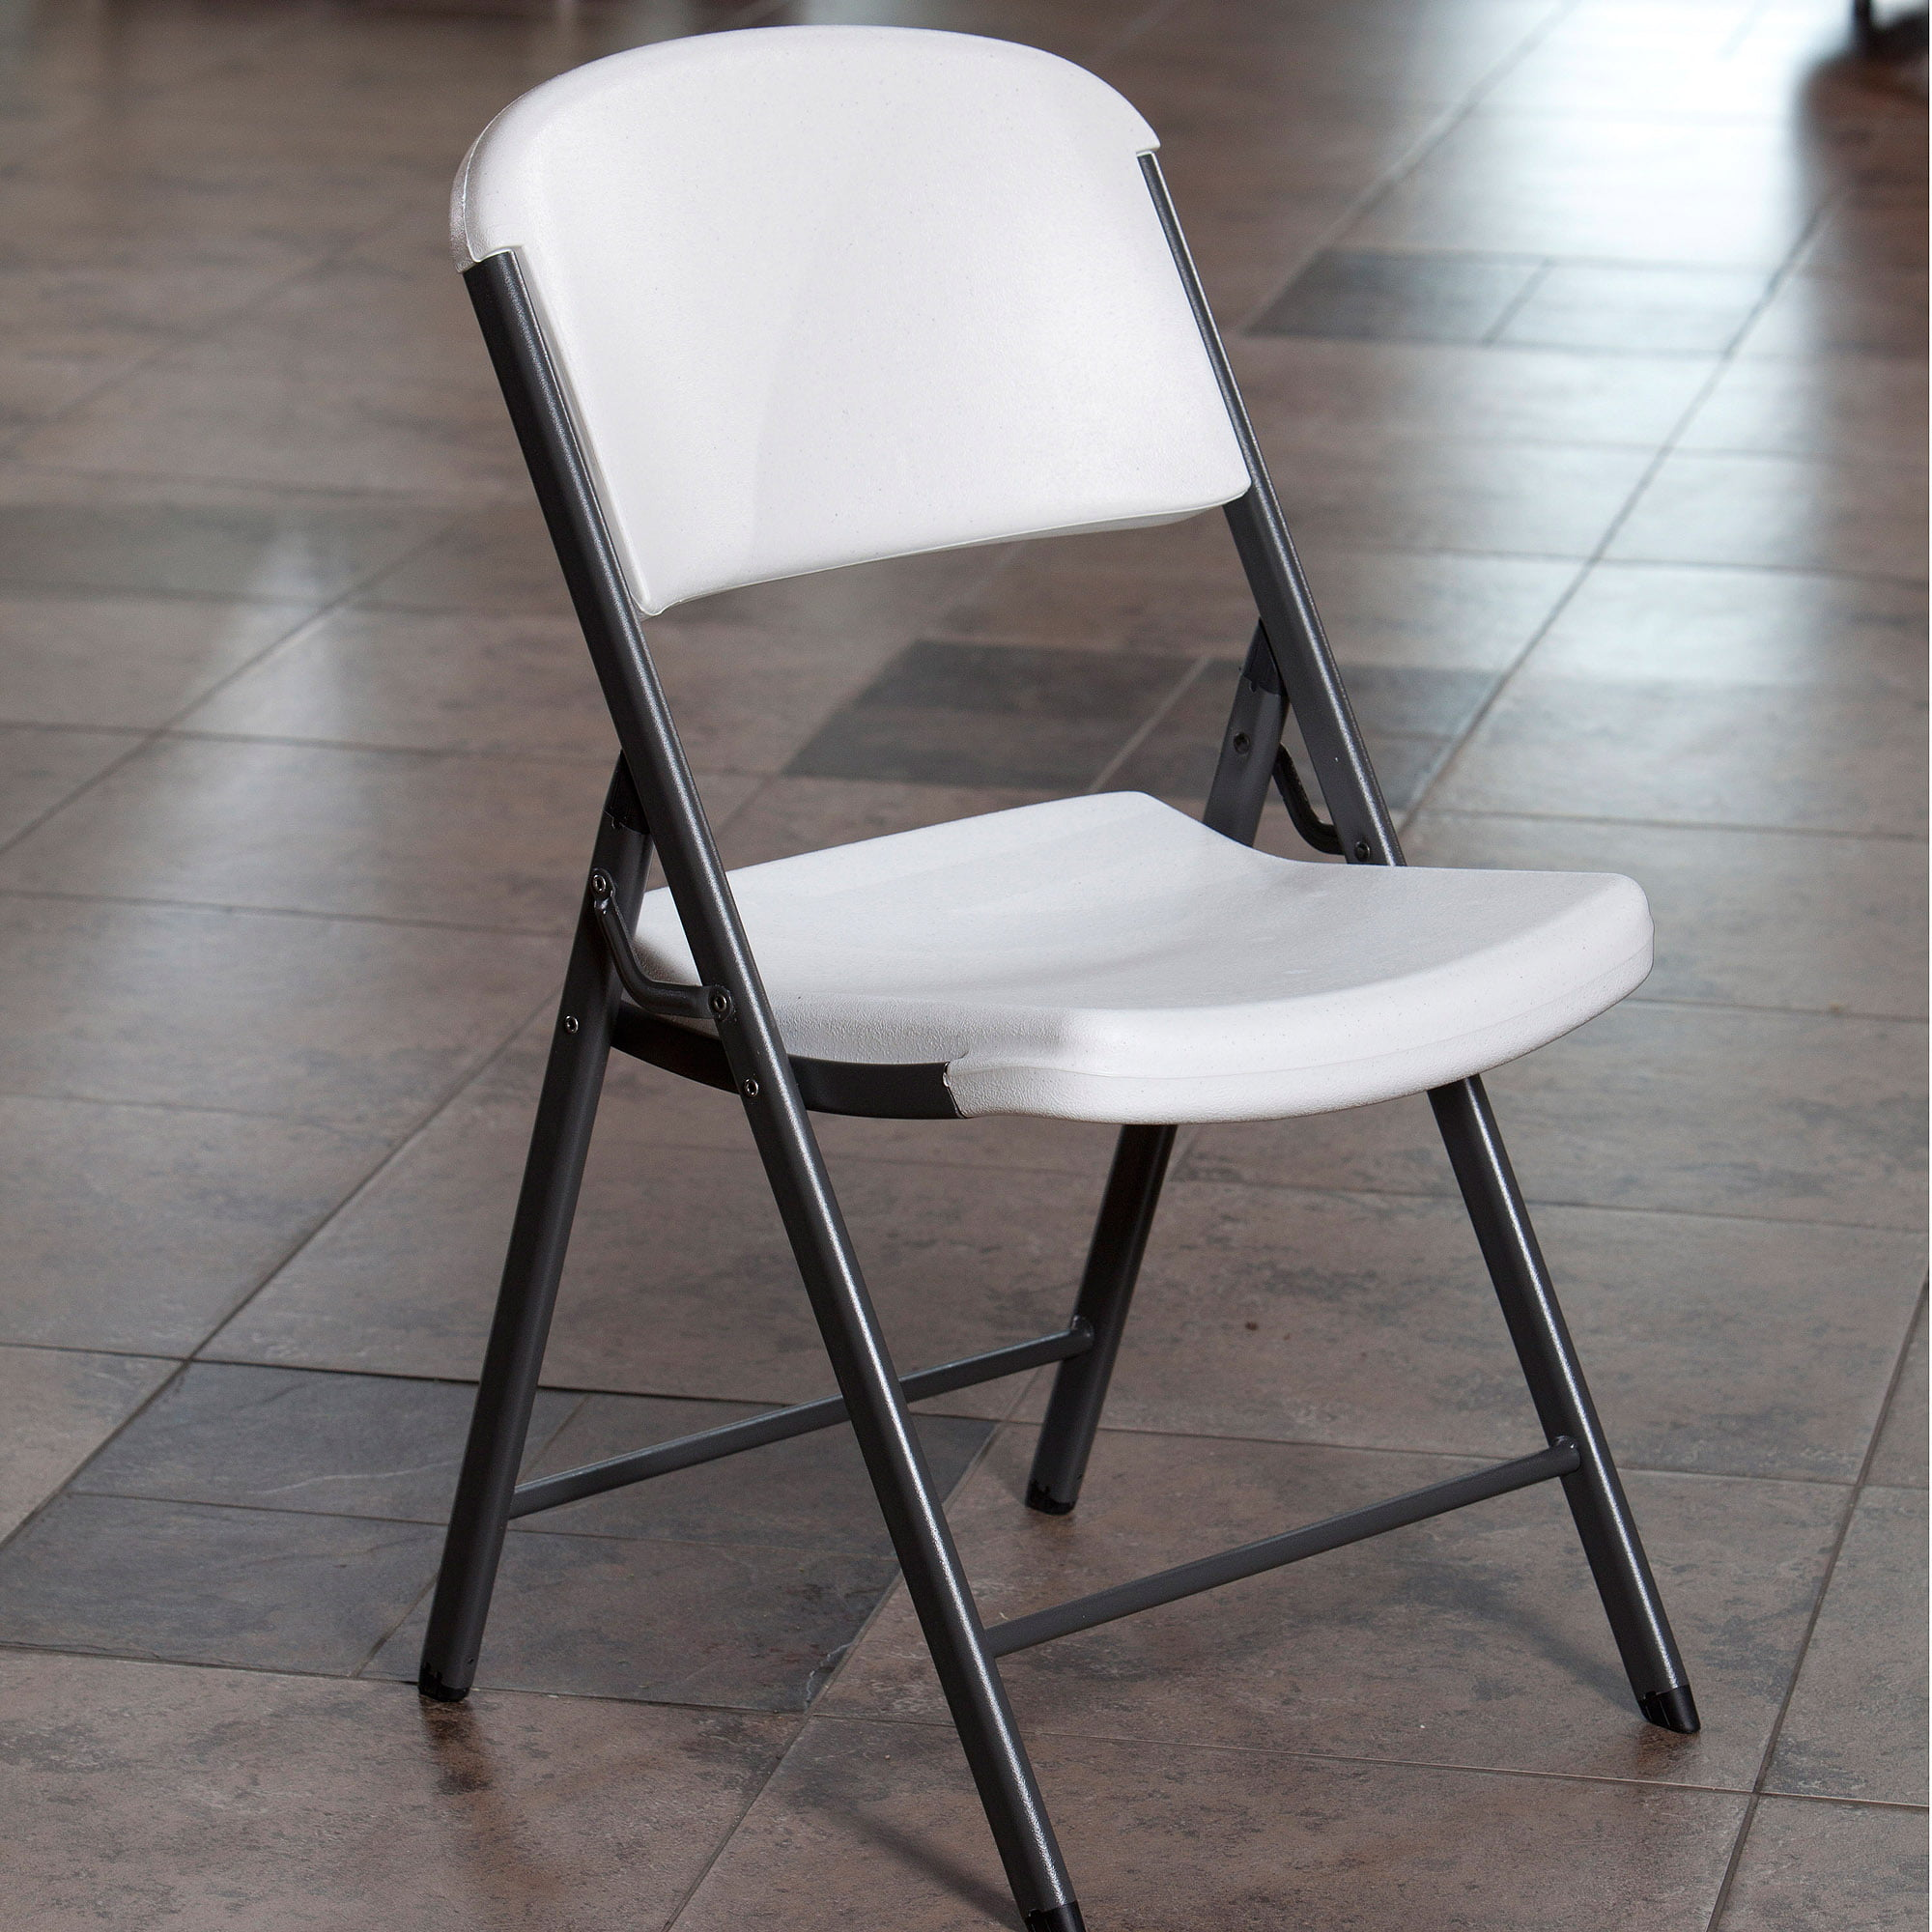 Top Ten Elegant Folding Table and Chairs Walmart